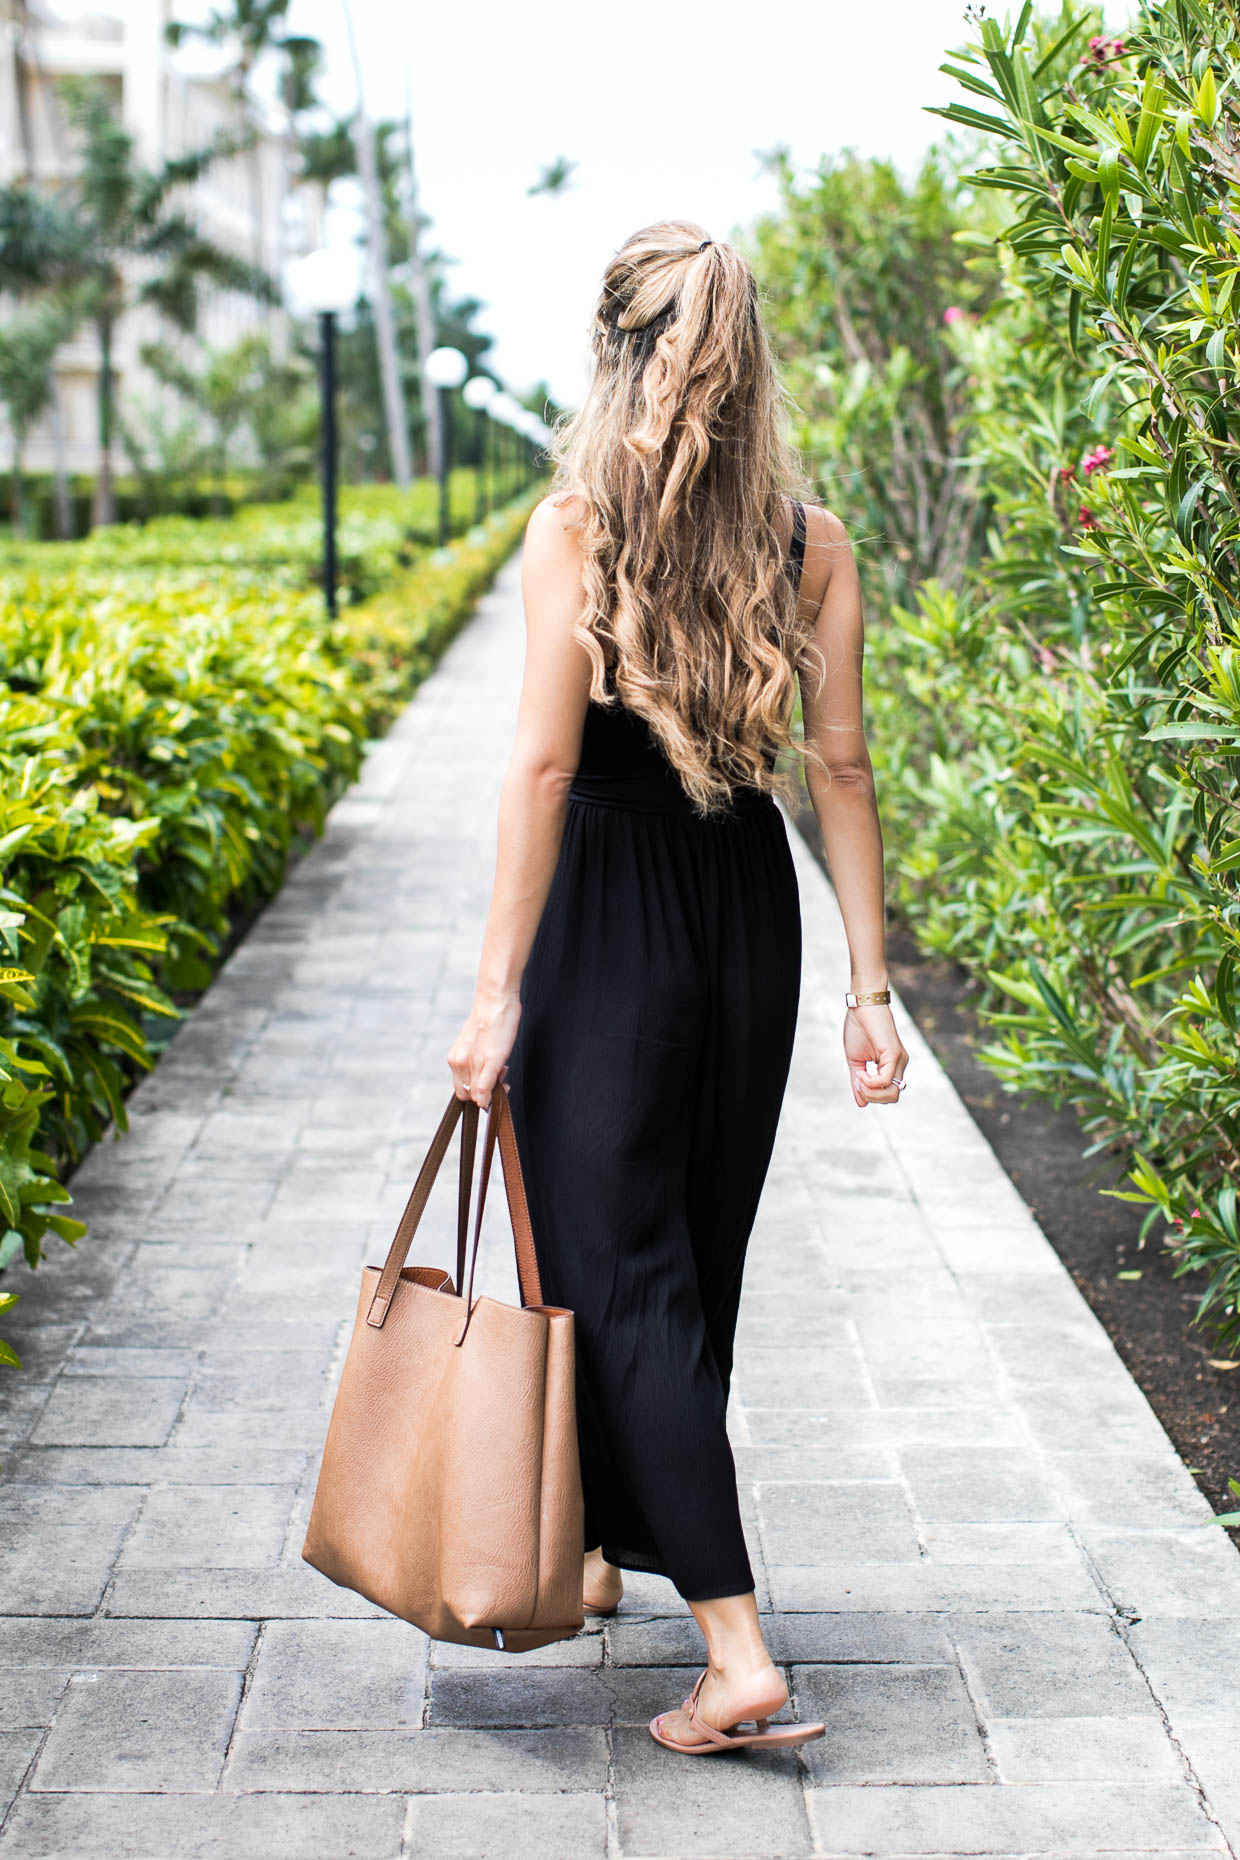 Fashion blogger The Darling Detail wears Lush Gauze Gaucho Jumpsuit, After Dark Knocker Earring, Tory Burch Miller Flip Flop, Brixton Johanna Straw Hat, Street Level Reversible Faux Leather Tote, and Petite Albion Ring with Morganite and Diamonds